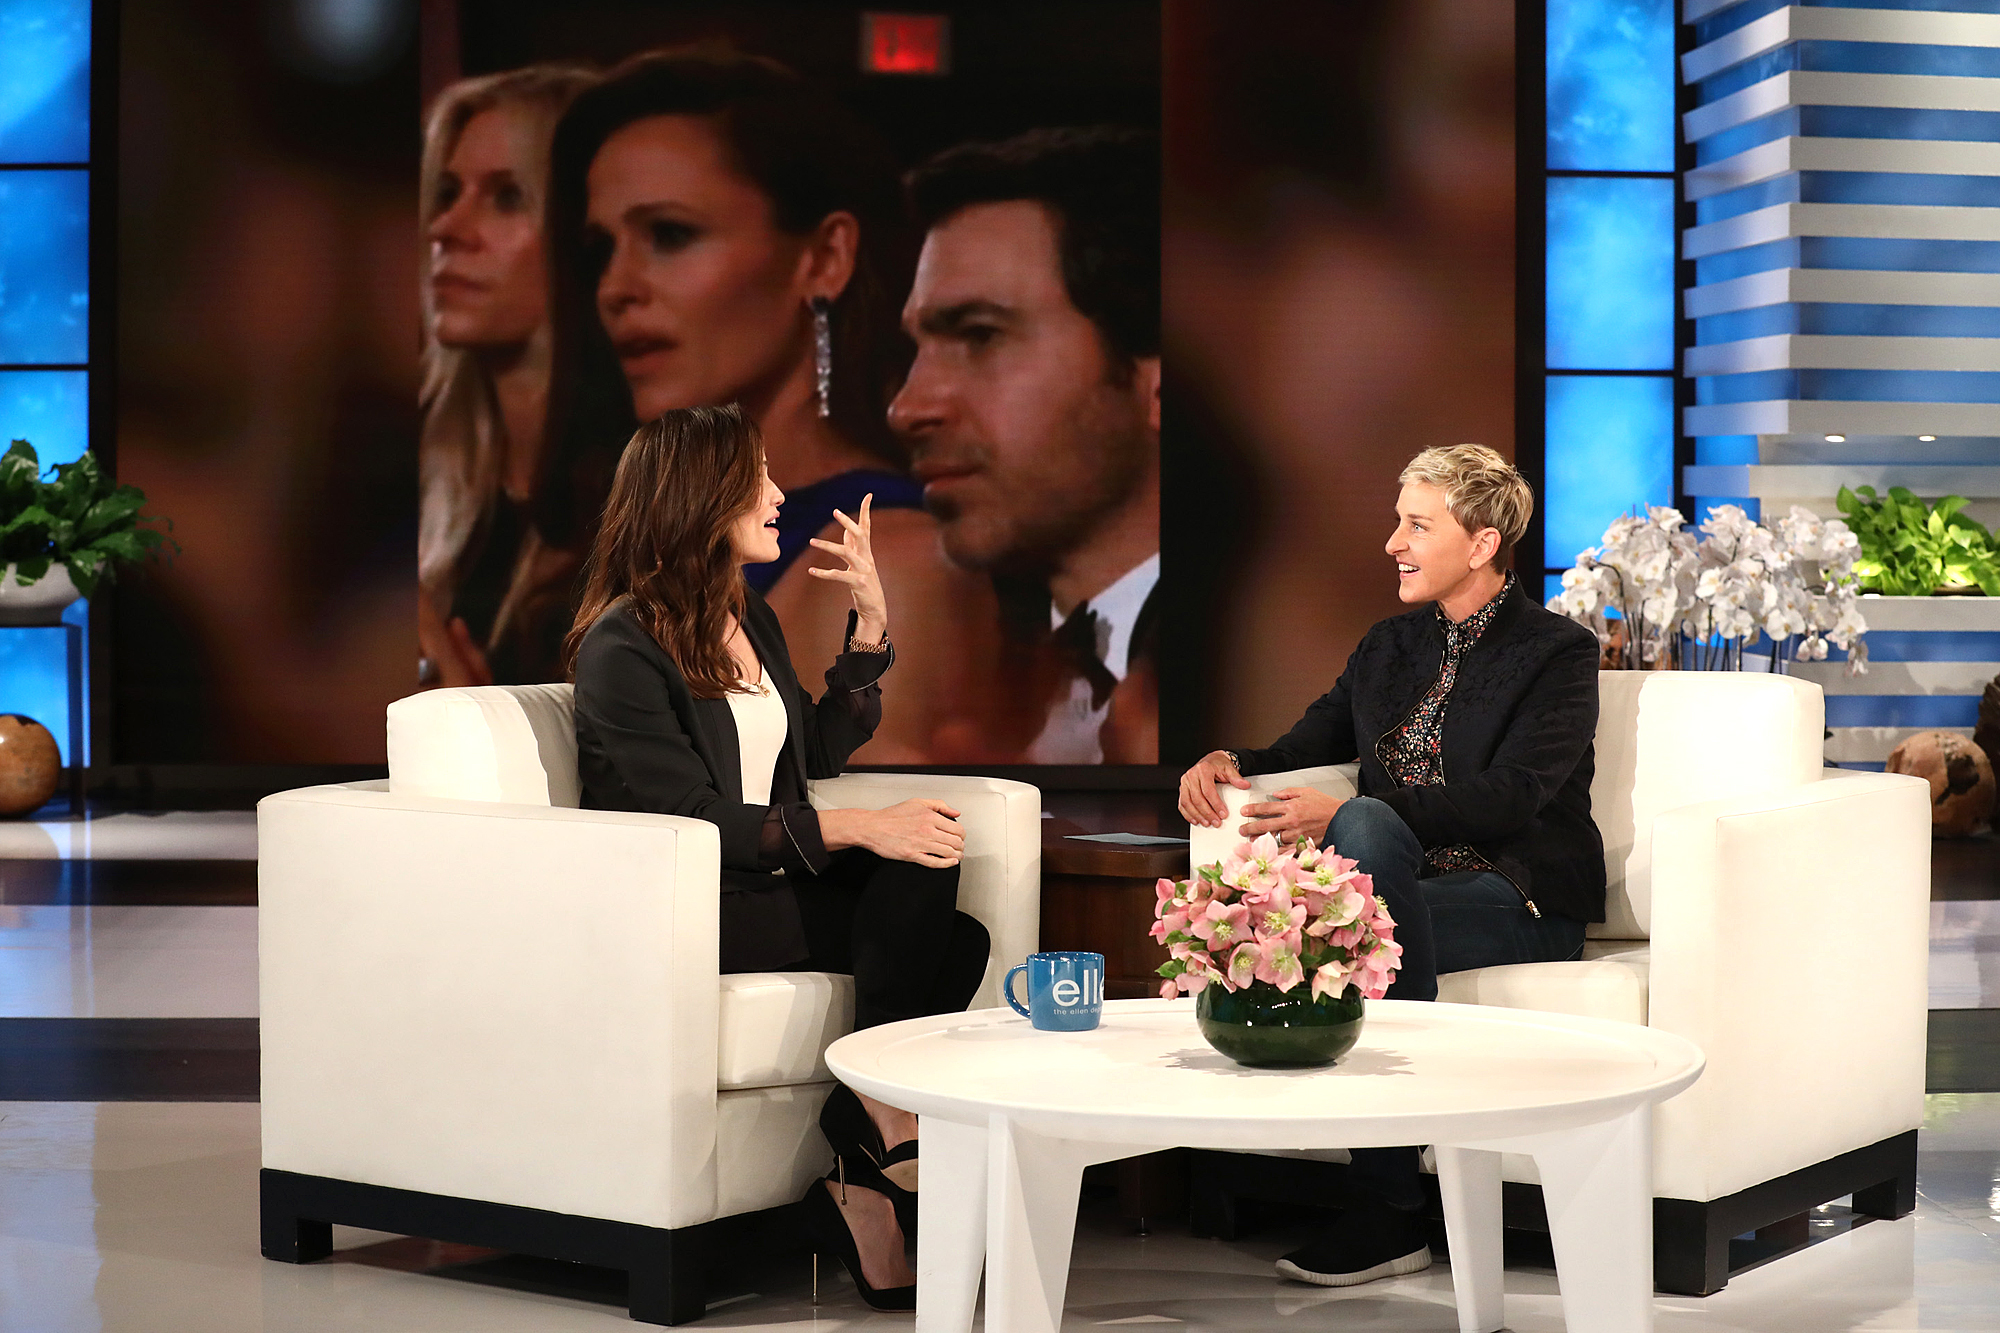 Jennifer Garner Says She Was Embarrassed by Her Viral Oscars Moment: 'What's Wrong with Me?' garner-ellen-1-2000